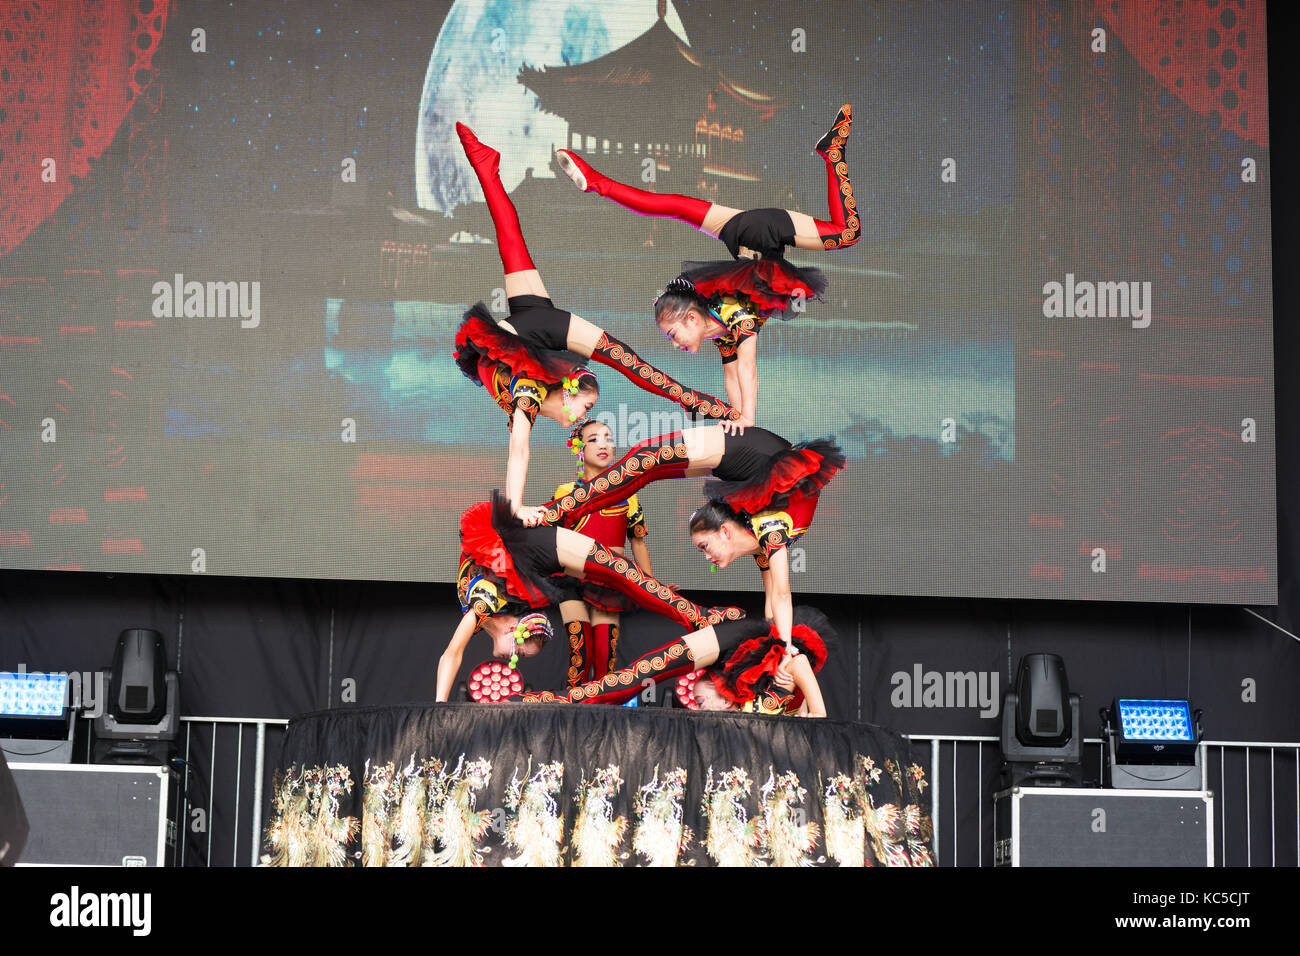 Chinese Contortion Show at the China Festival 2017 in Cologne, Germany. - Stock Image